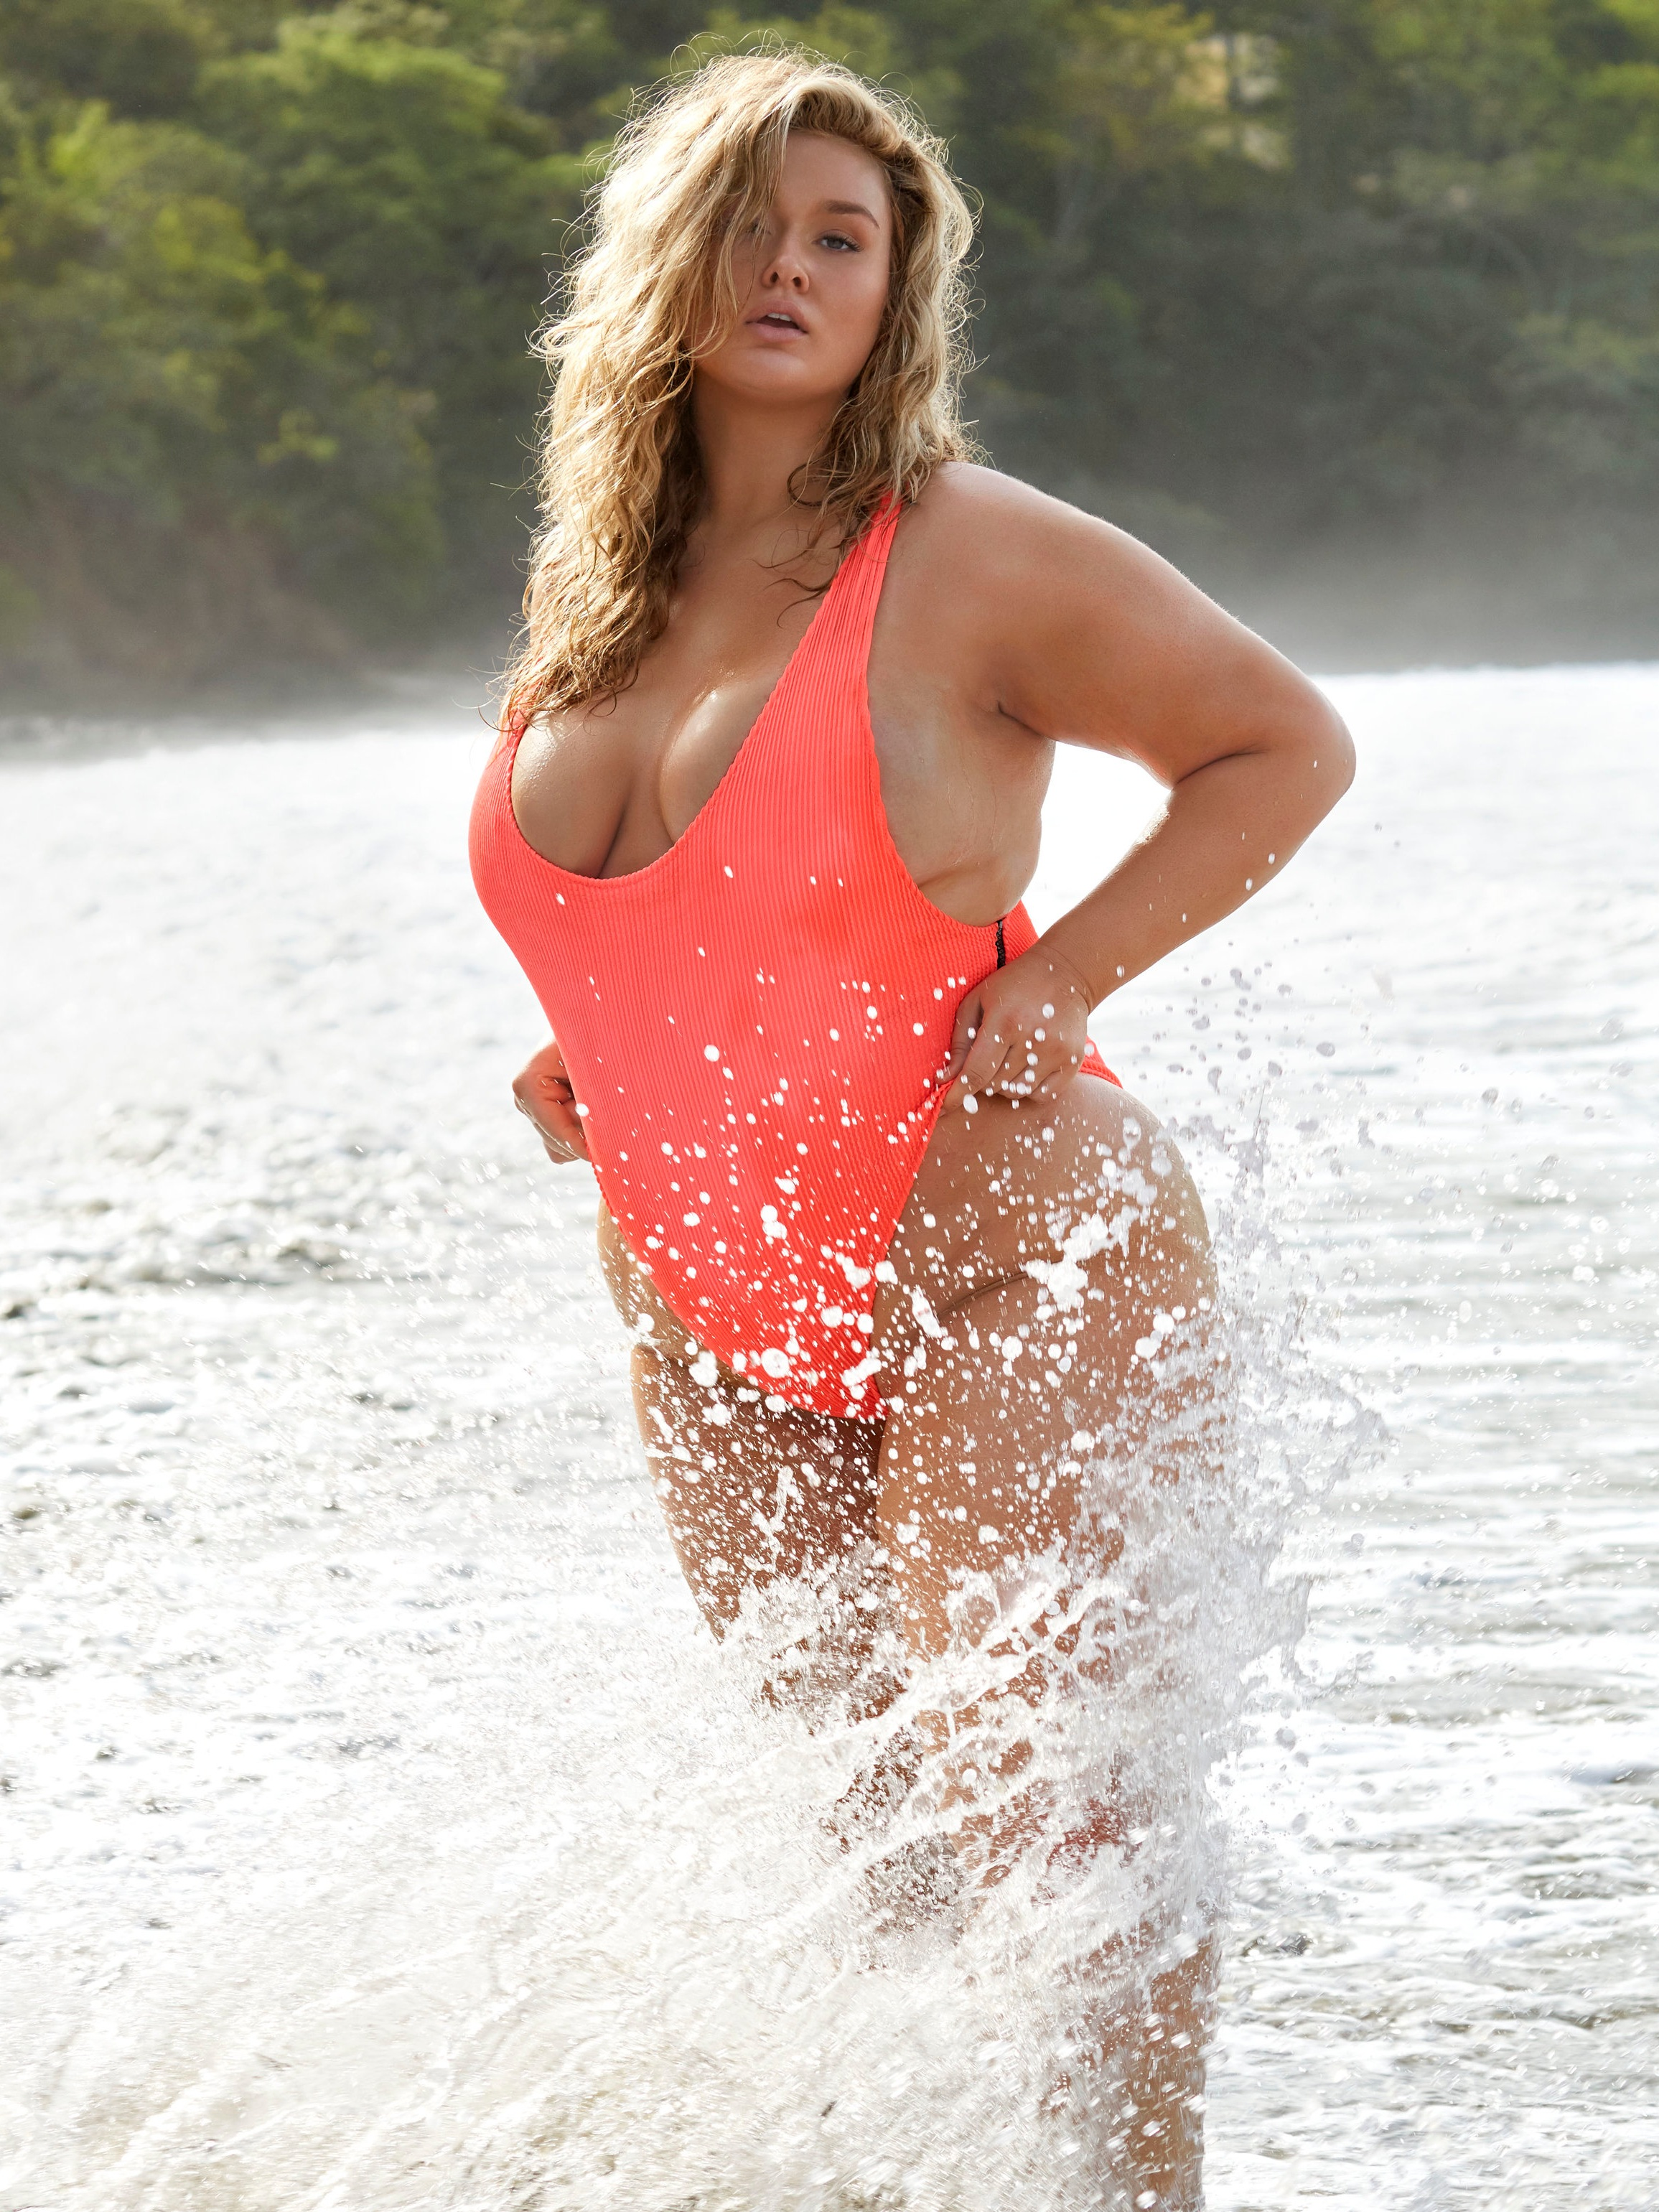 Hunter McGrady - @huntermcgrady